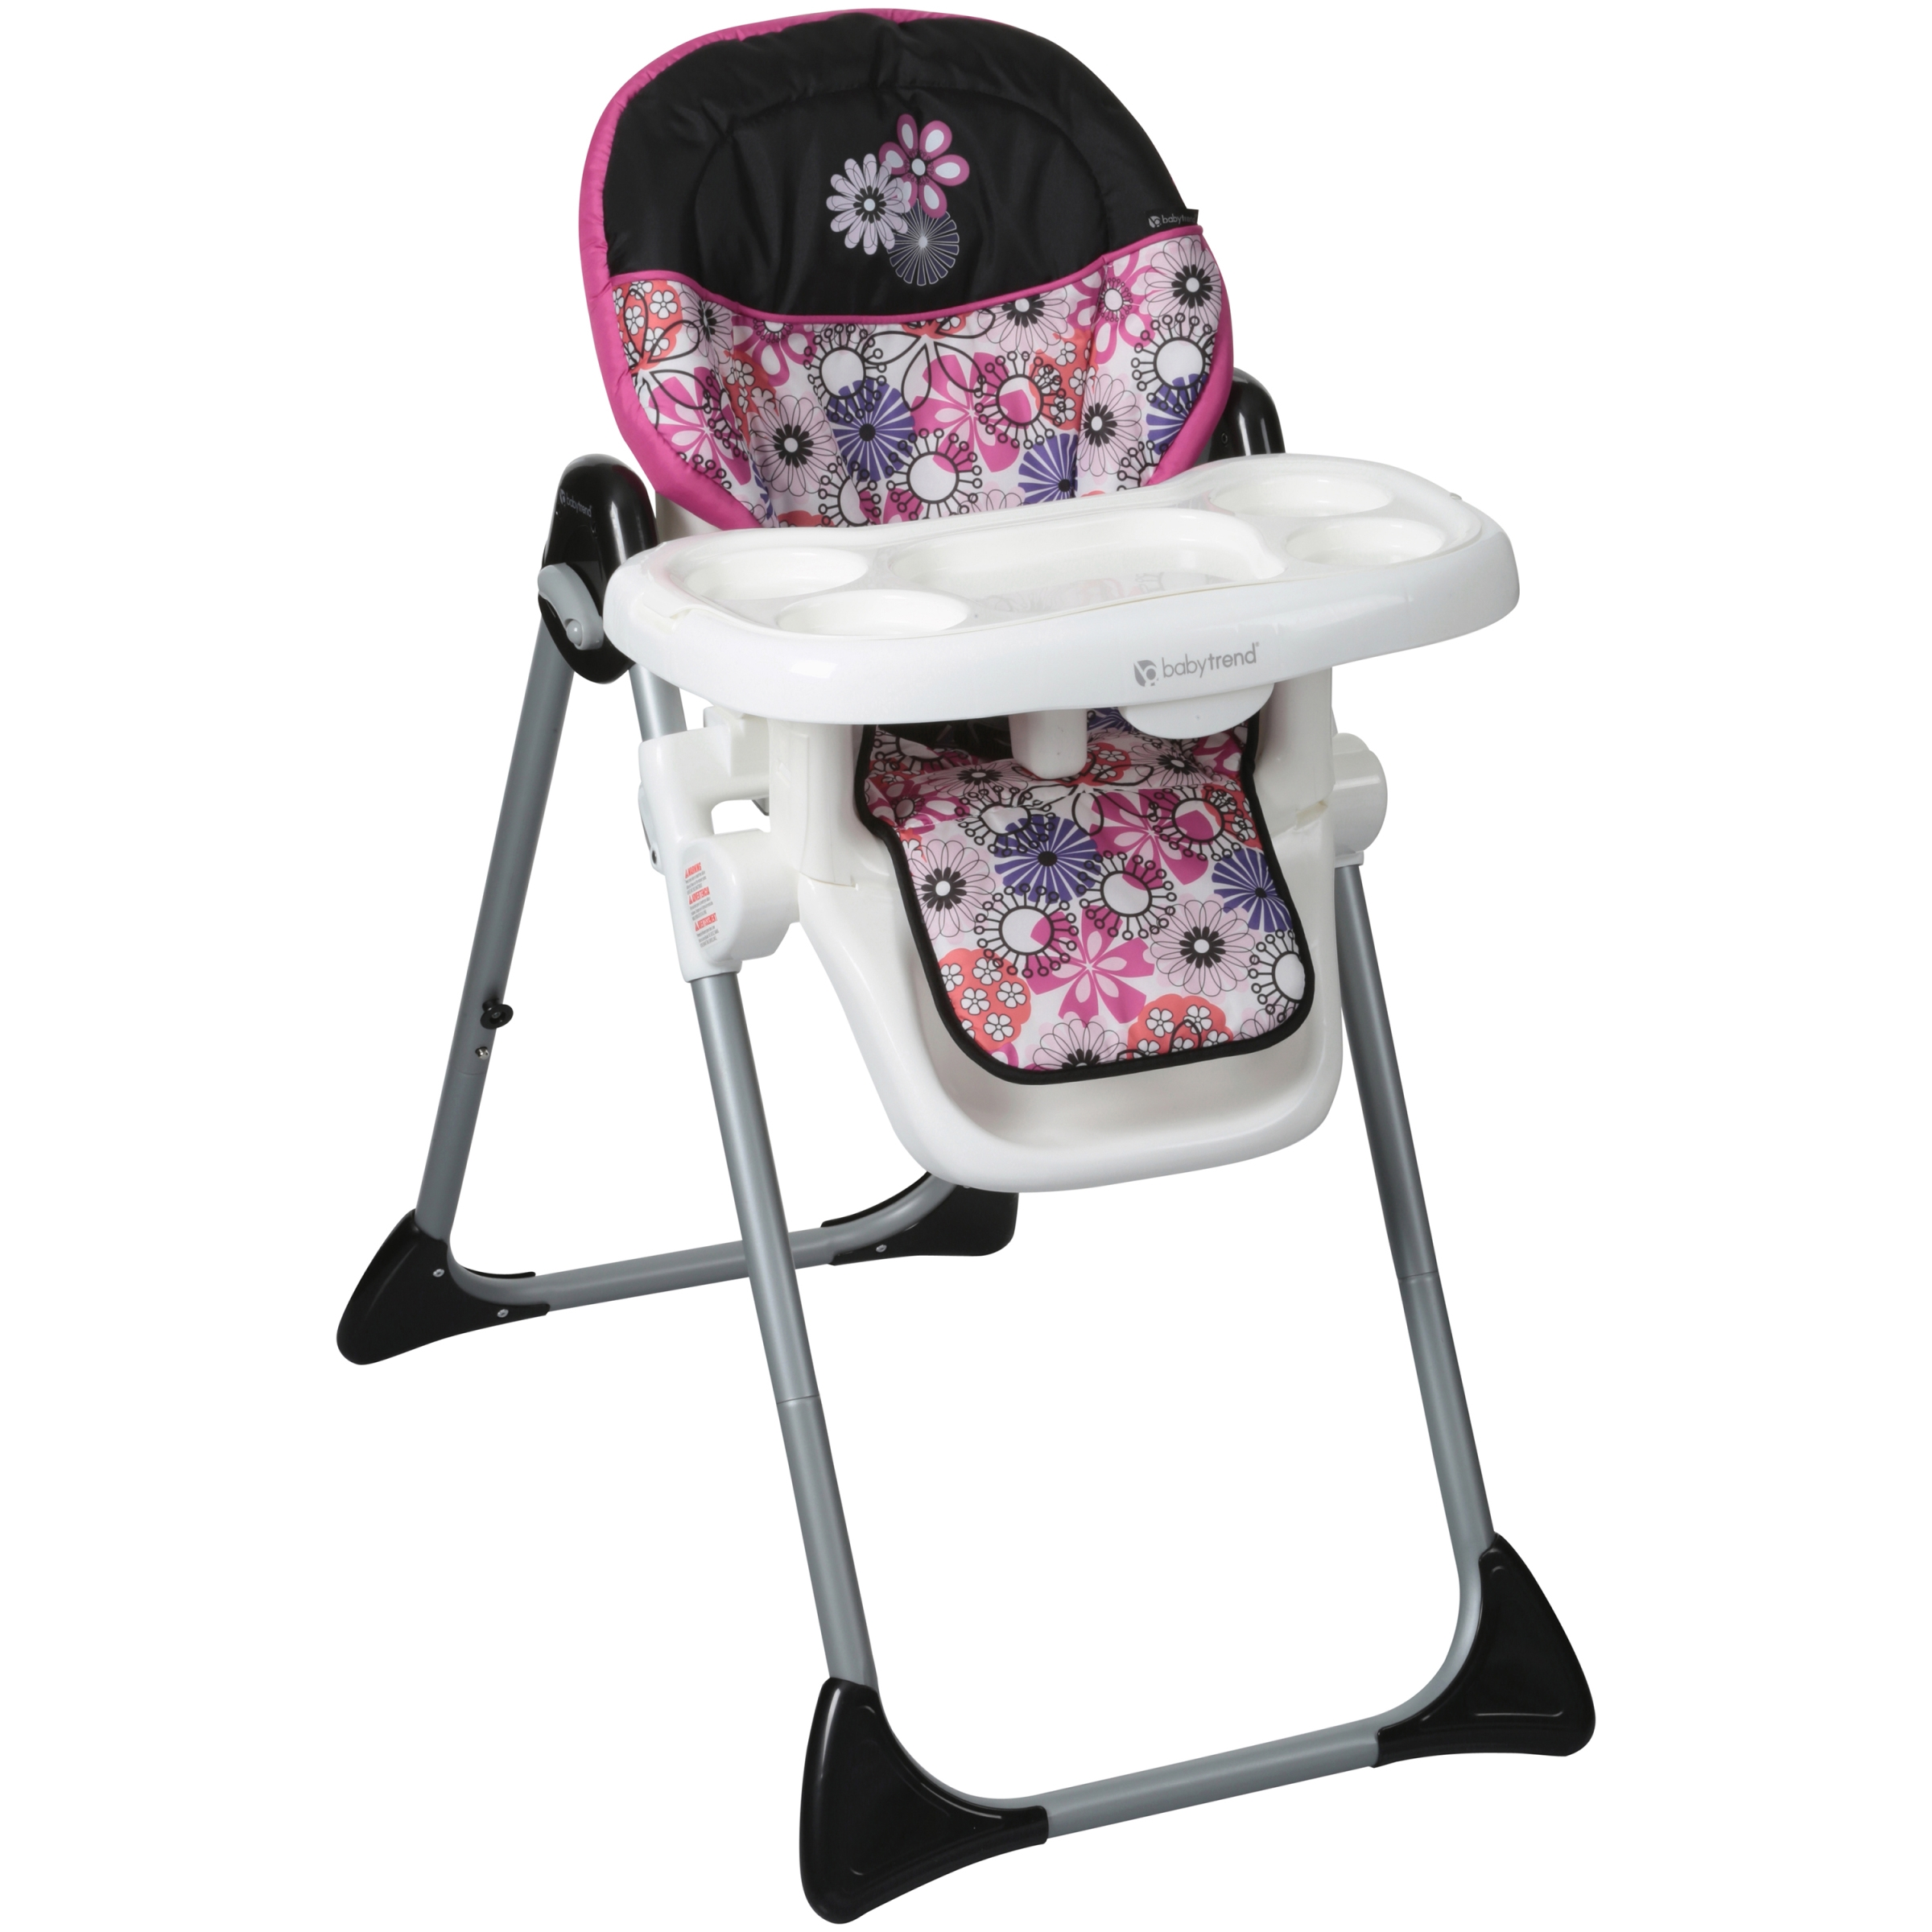 Babytrend® Fashion Floral Garden Sit-Right High Chair